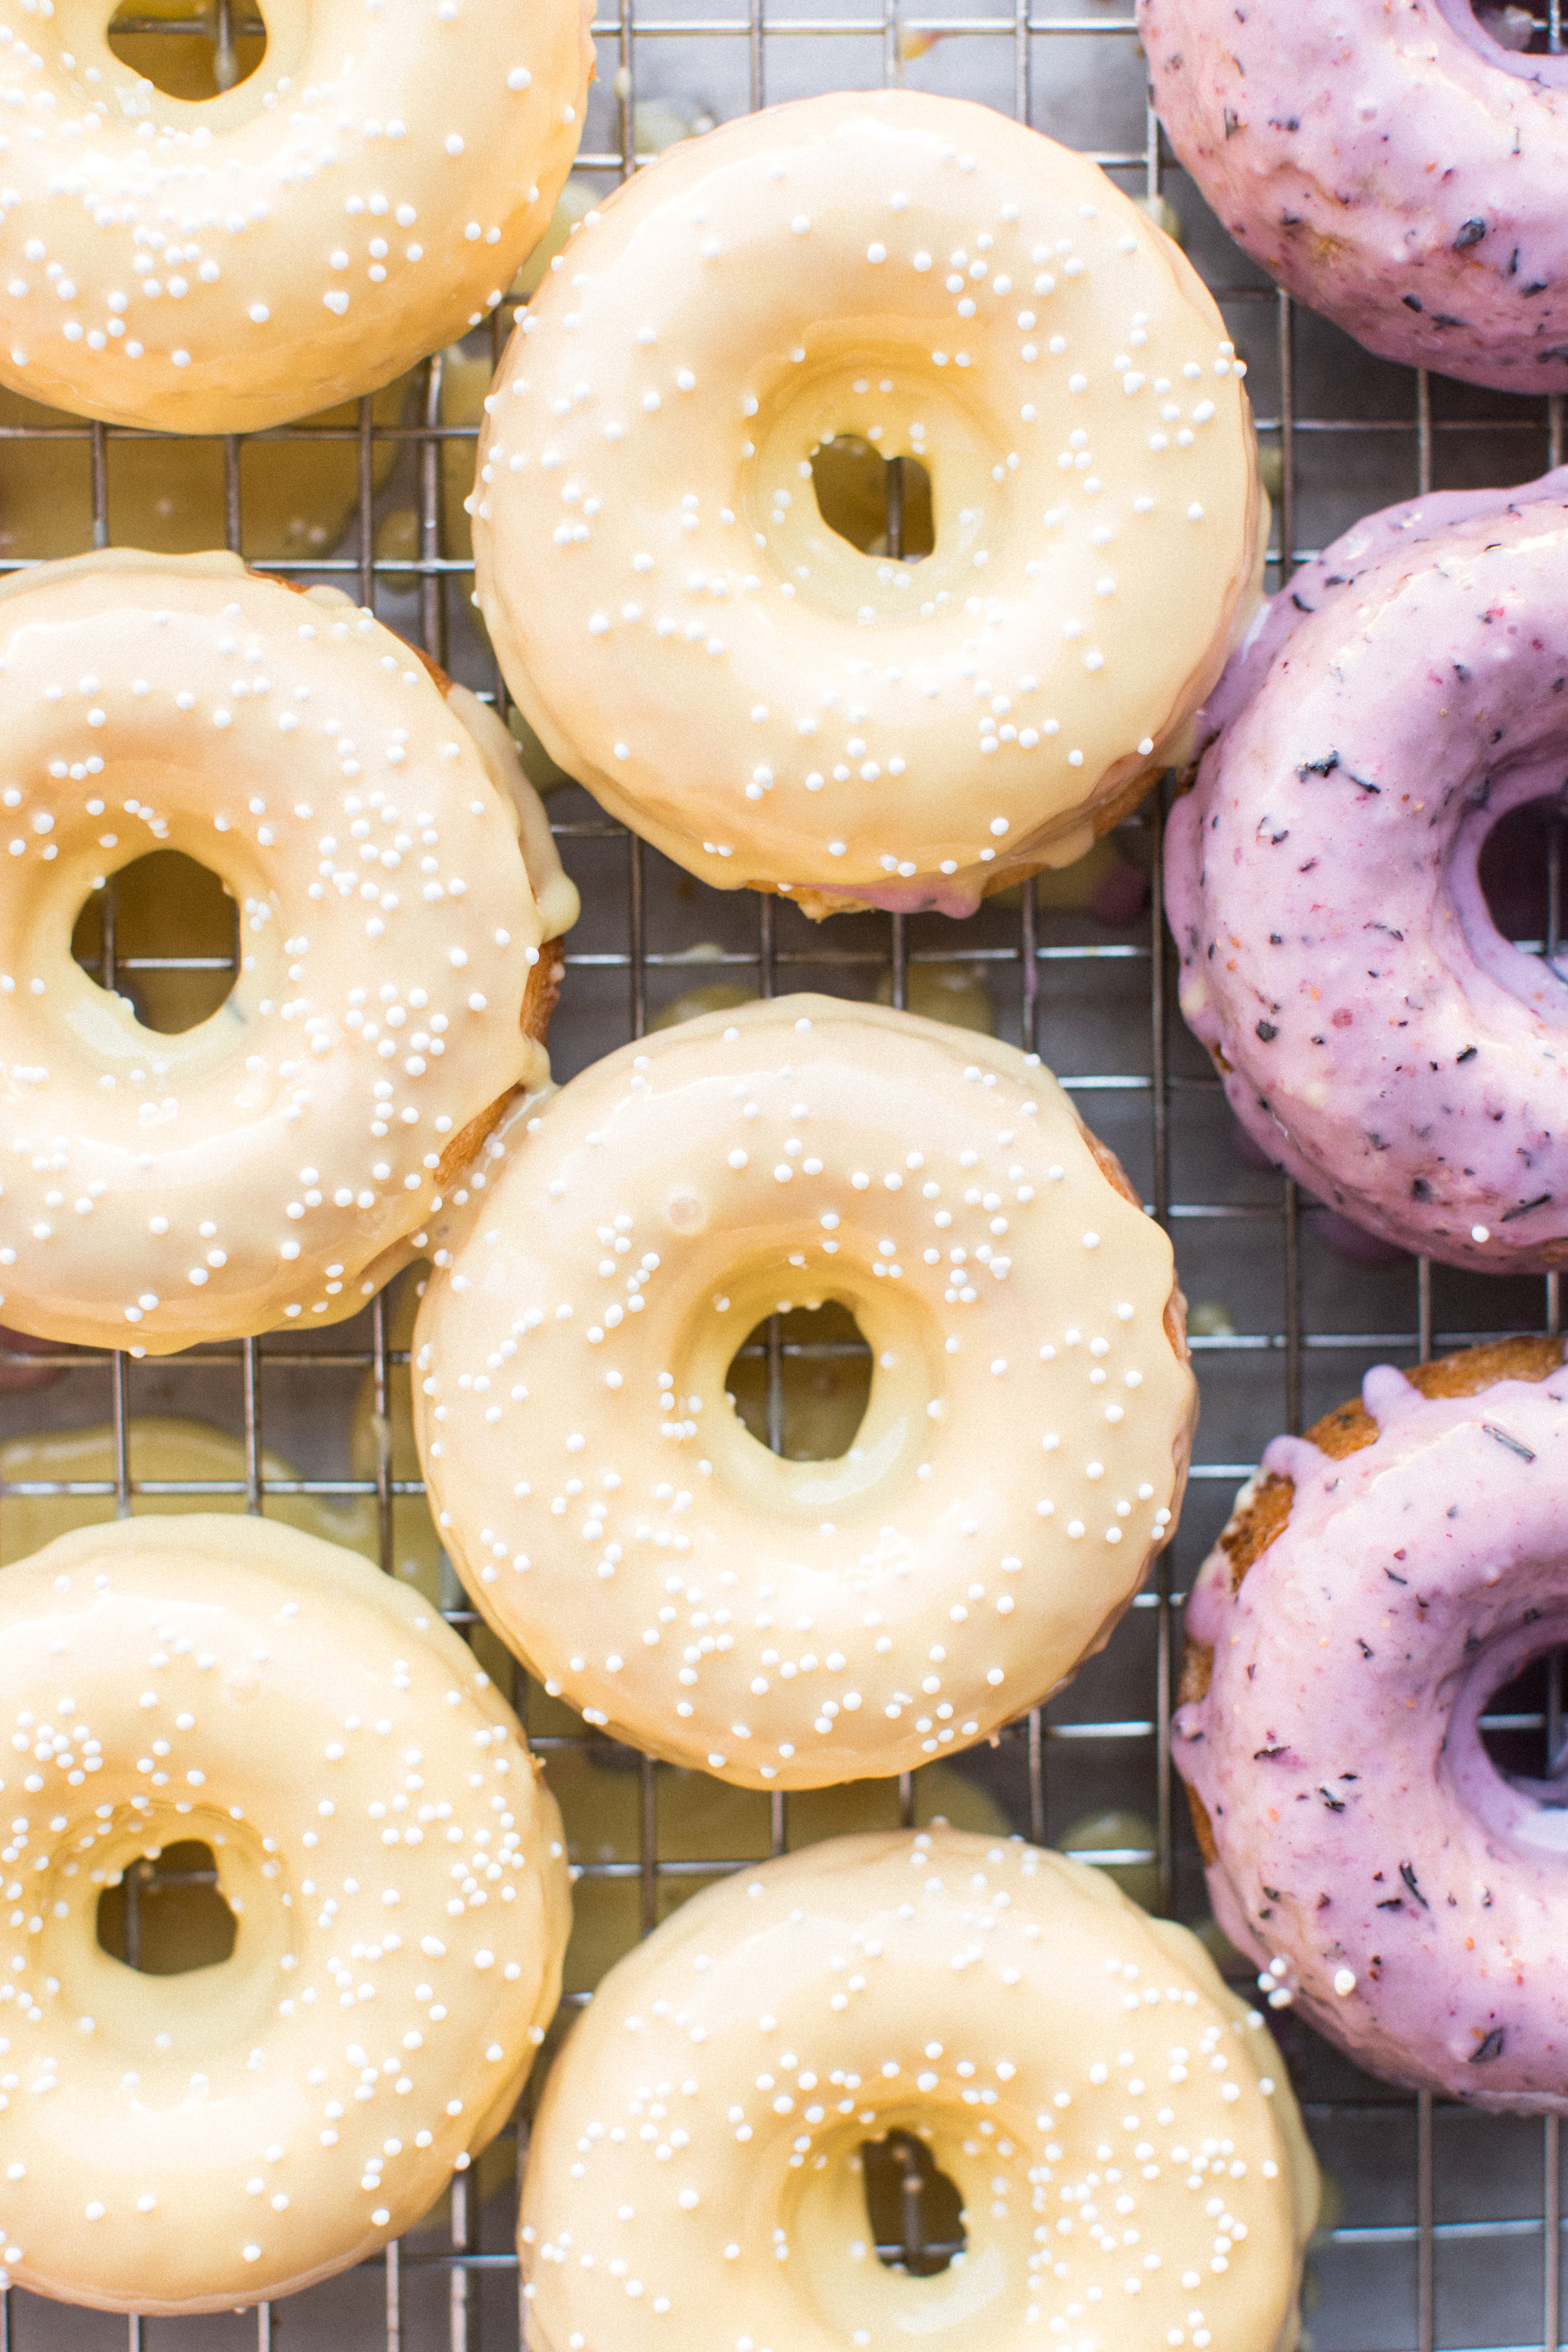 Honeysuckle's 3 Fruity Baked Donuts